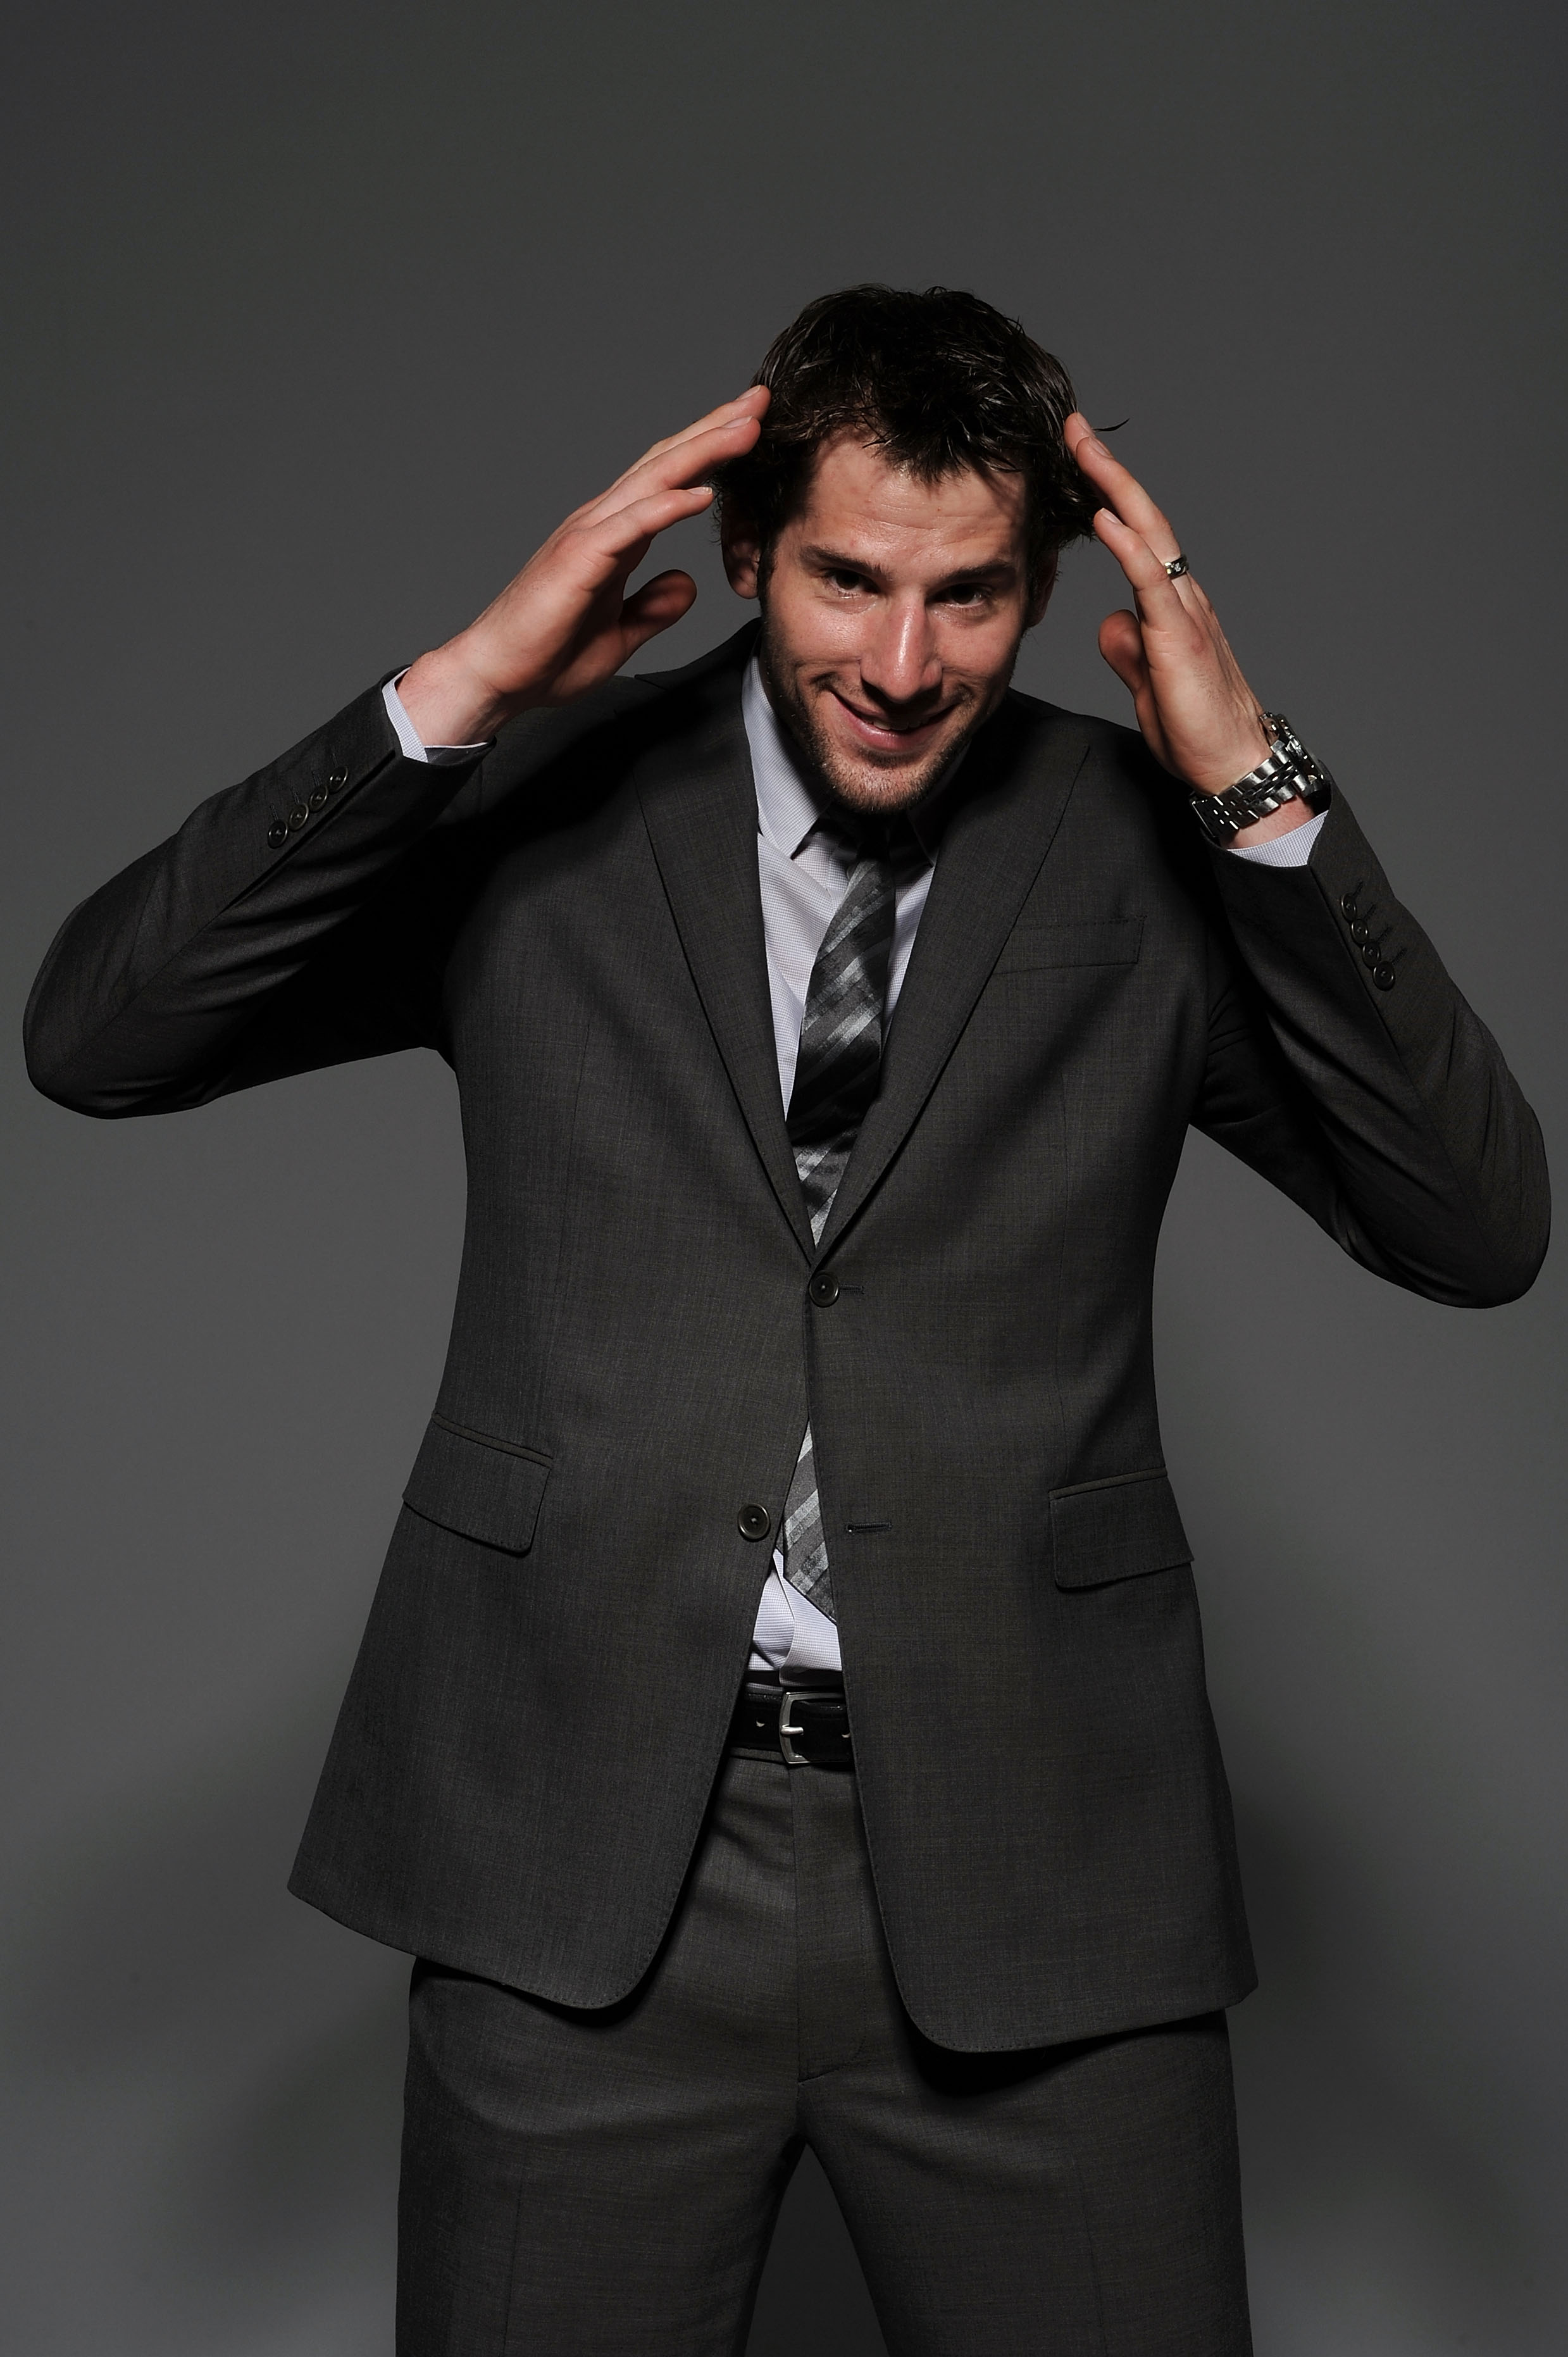 LAS VEGAS - JUNE 23:  Ryan Kesler of the Vancouver Canucks poses for a portrait during the 2010 NHL Awards at the Palms Casino Resort on June 23, 2010 in Las Vegas, Nevada.  (Photo by Harry How/Getty Images)